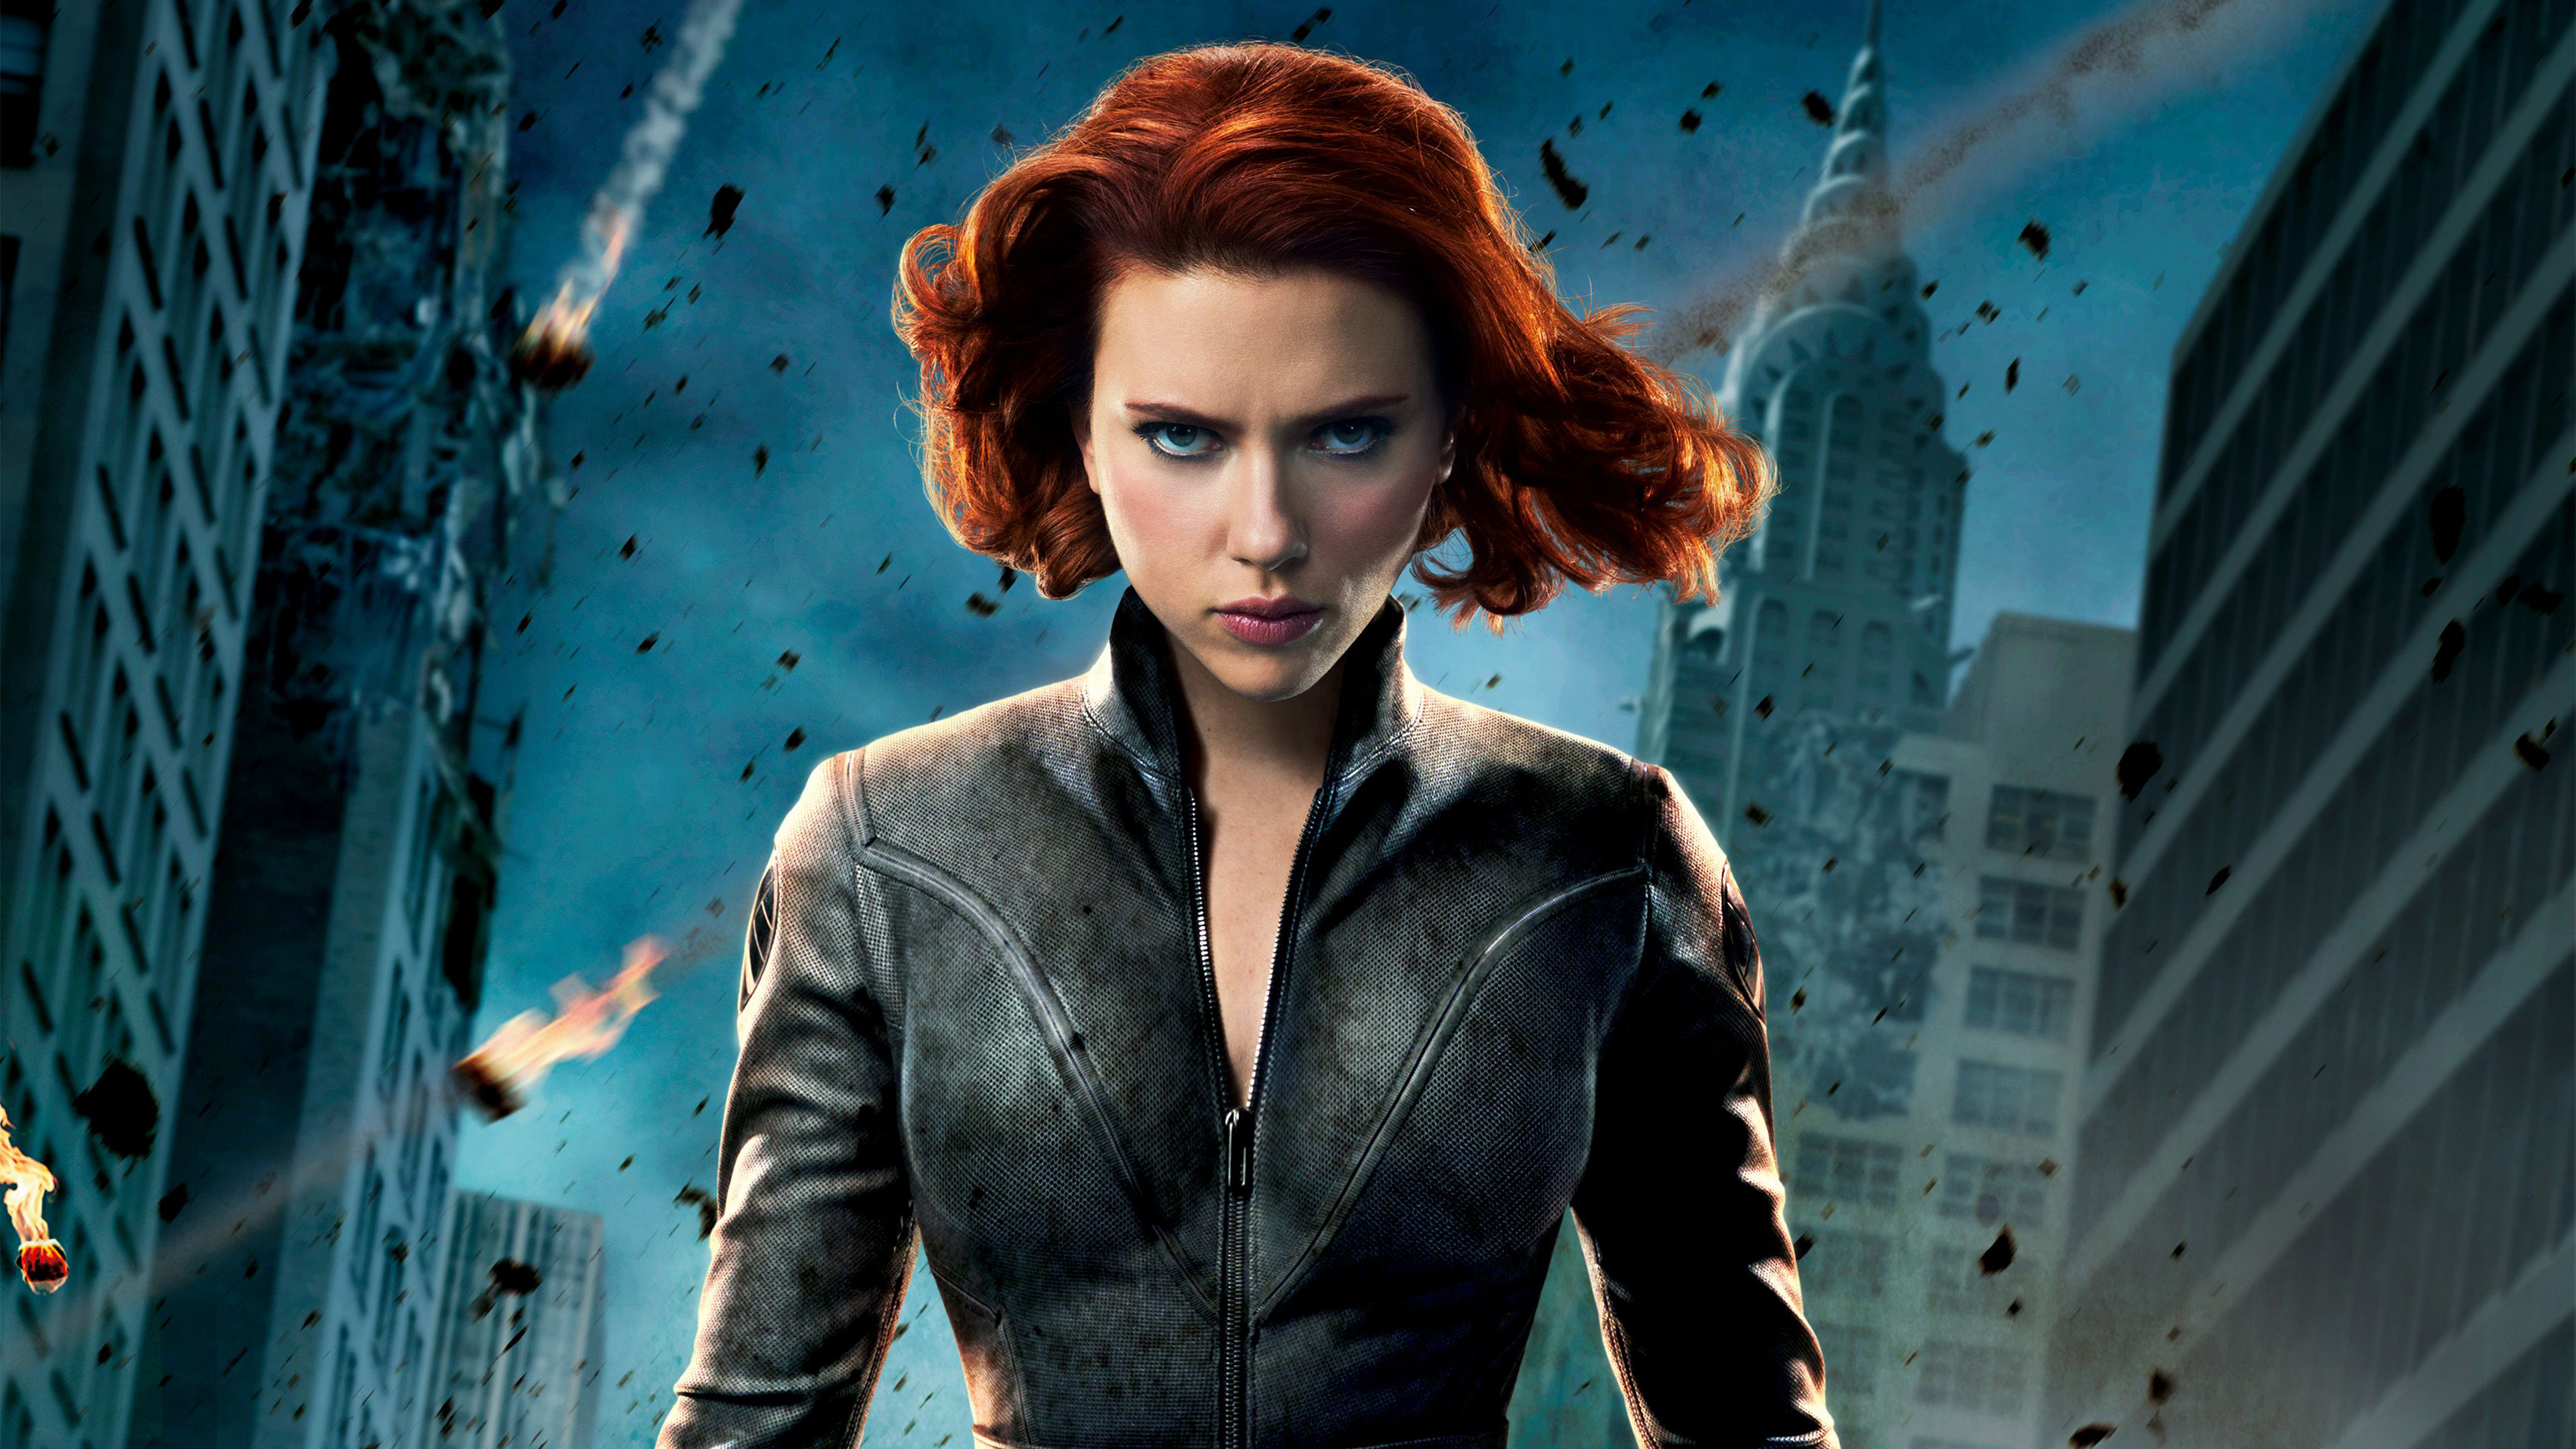 Scarlett Johansson Black Widow 4k New Hd Superheroes 4k Wallpapers Images Backgrounds Photos And Pictures